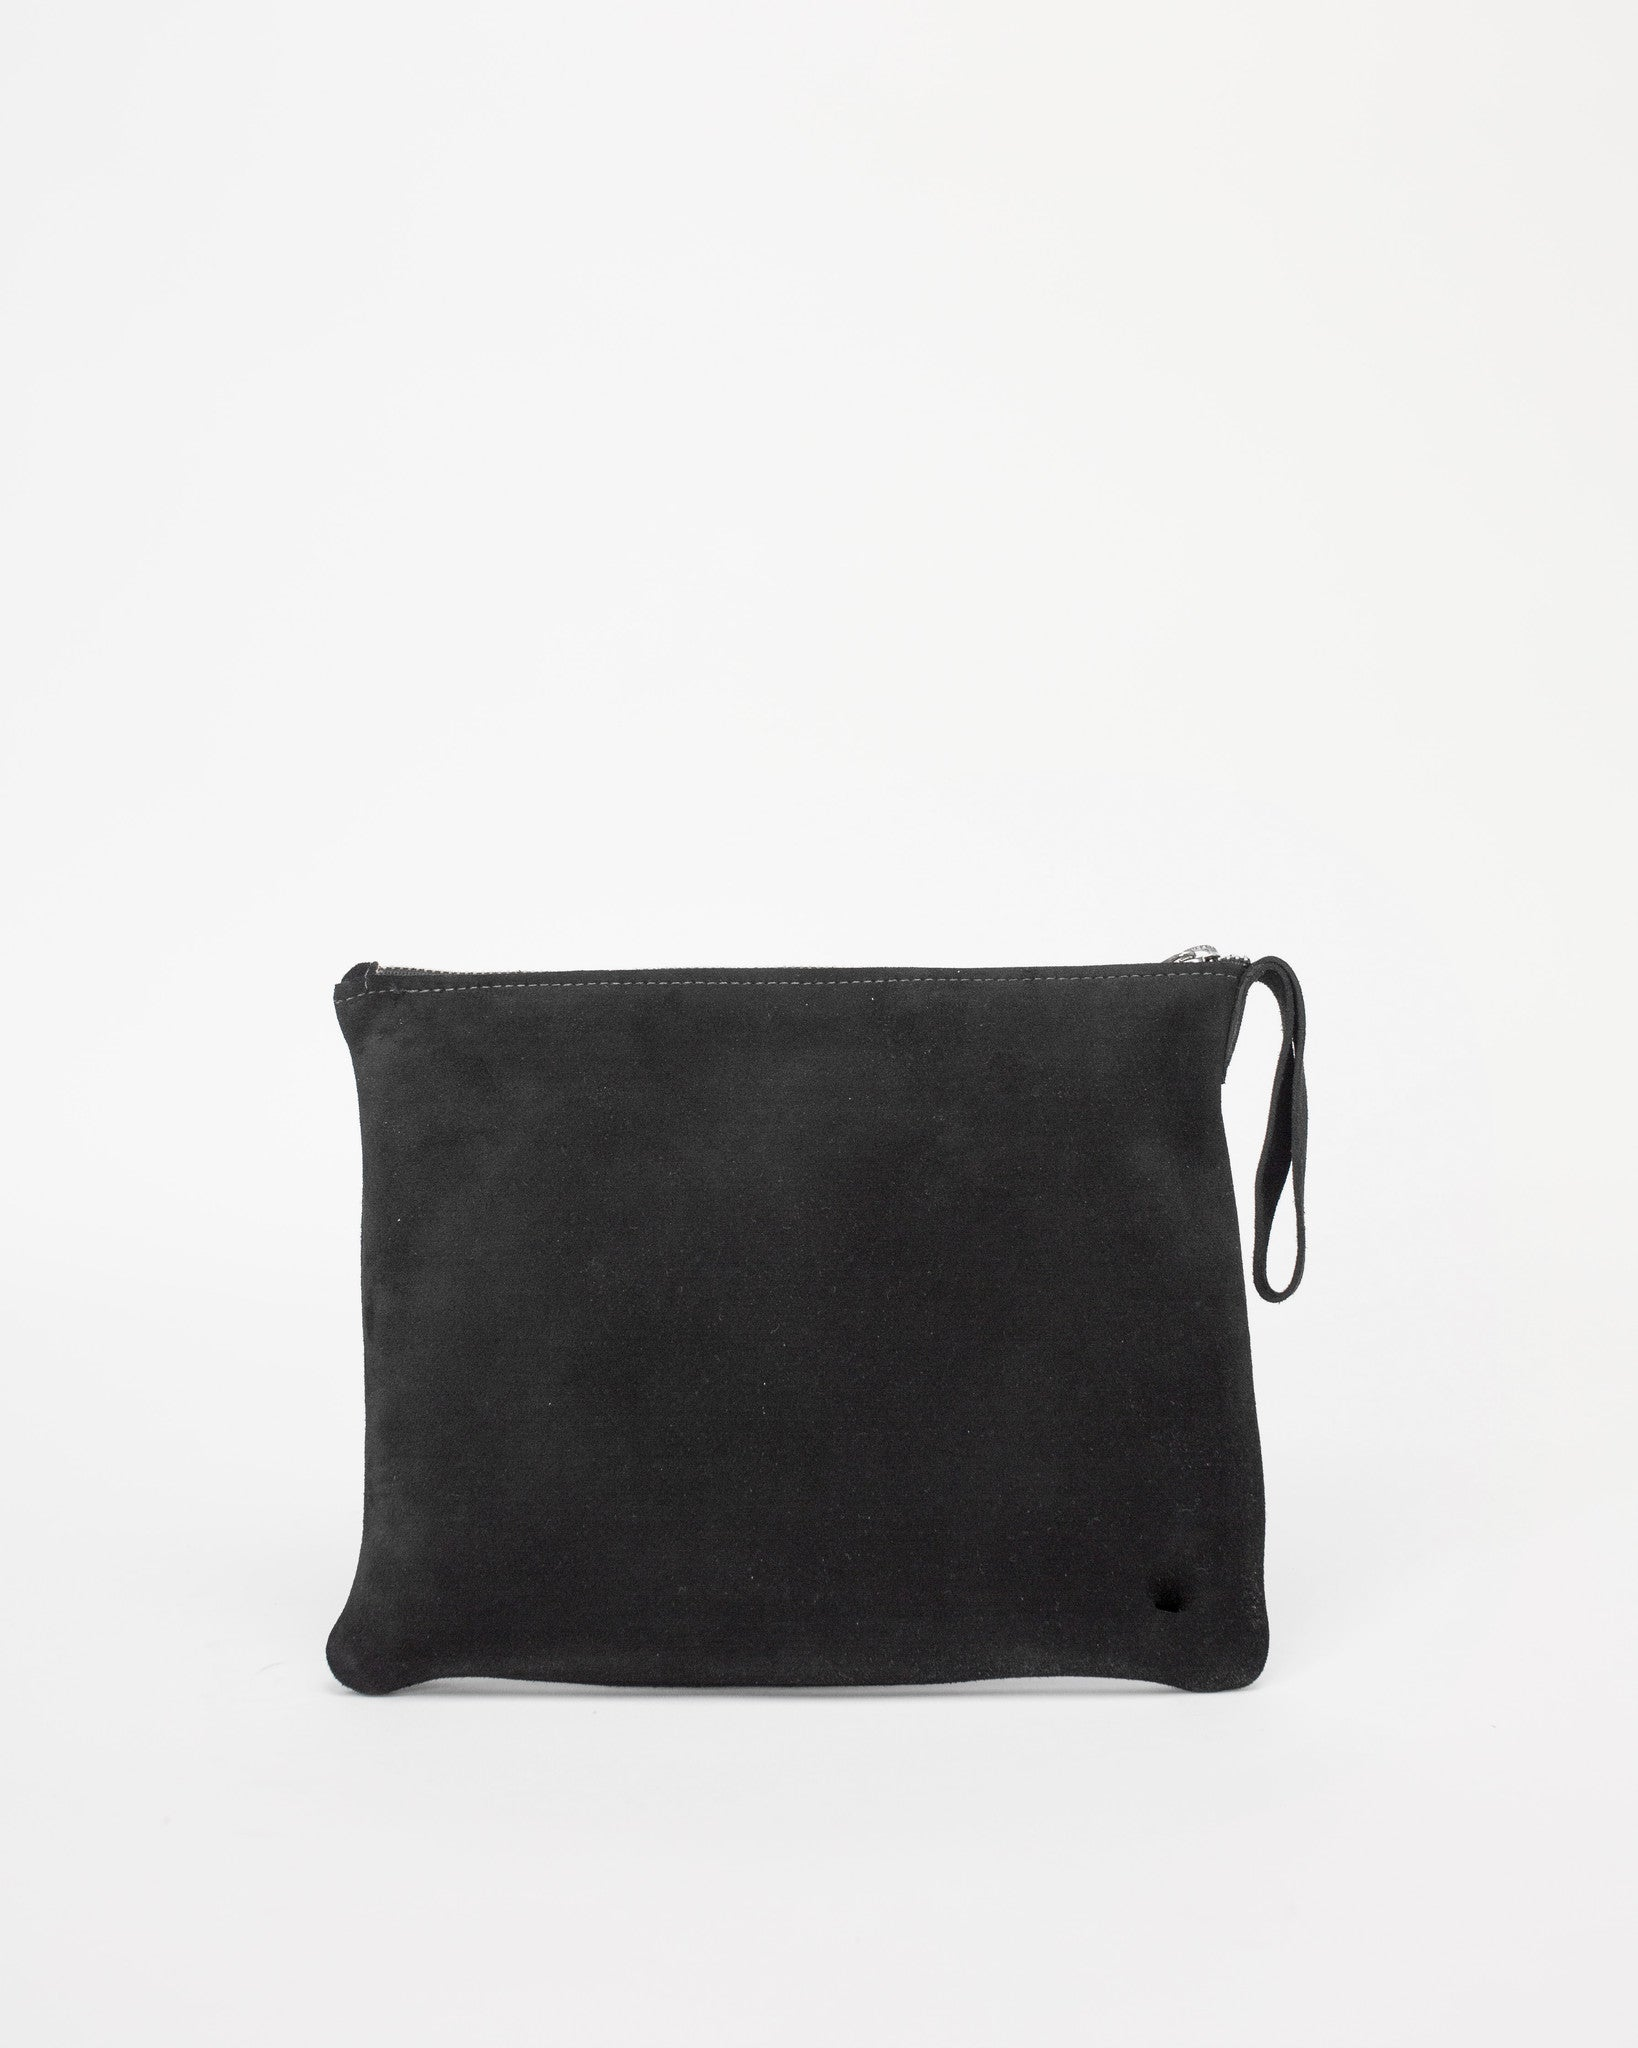 ESBY CLUTCH - BLACK SUEDE